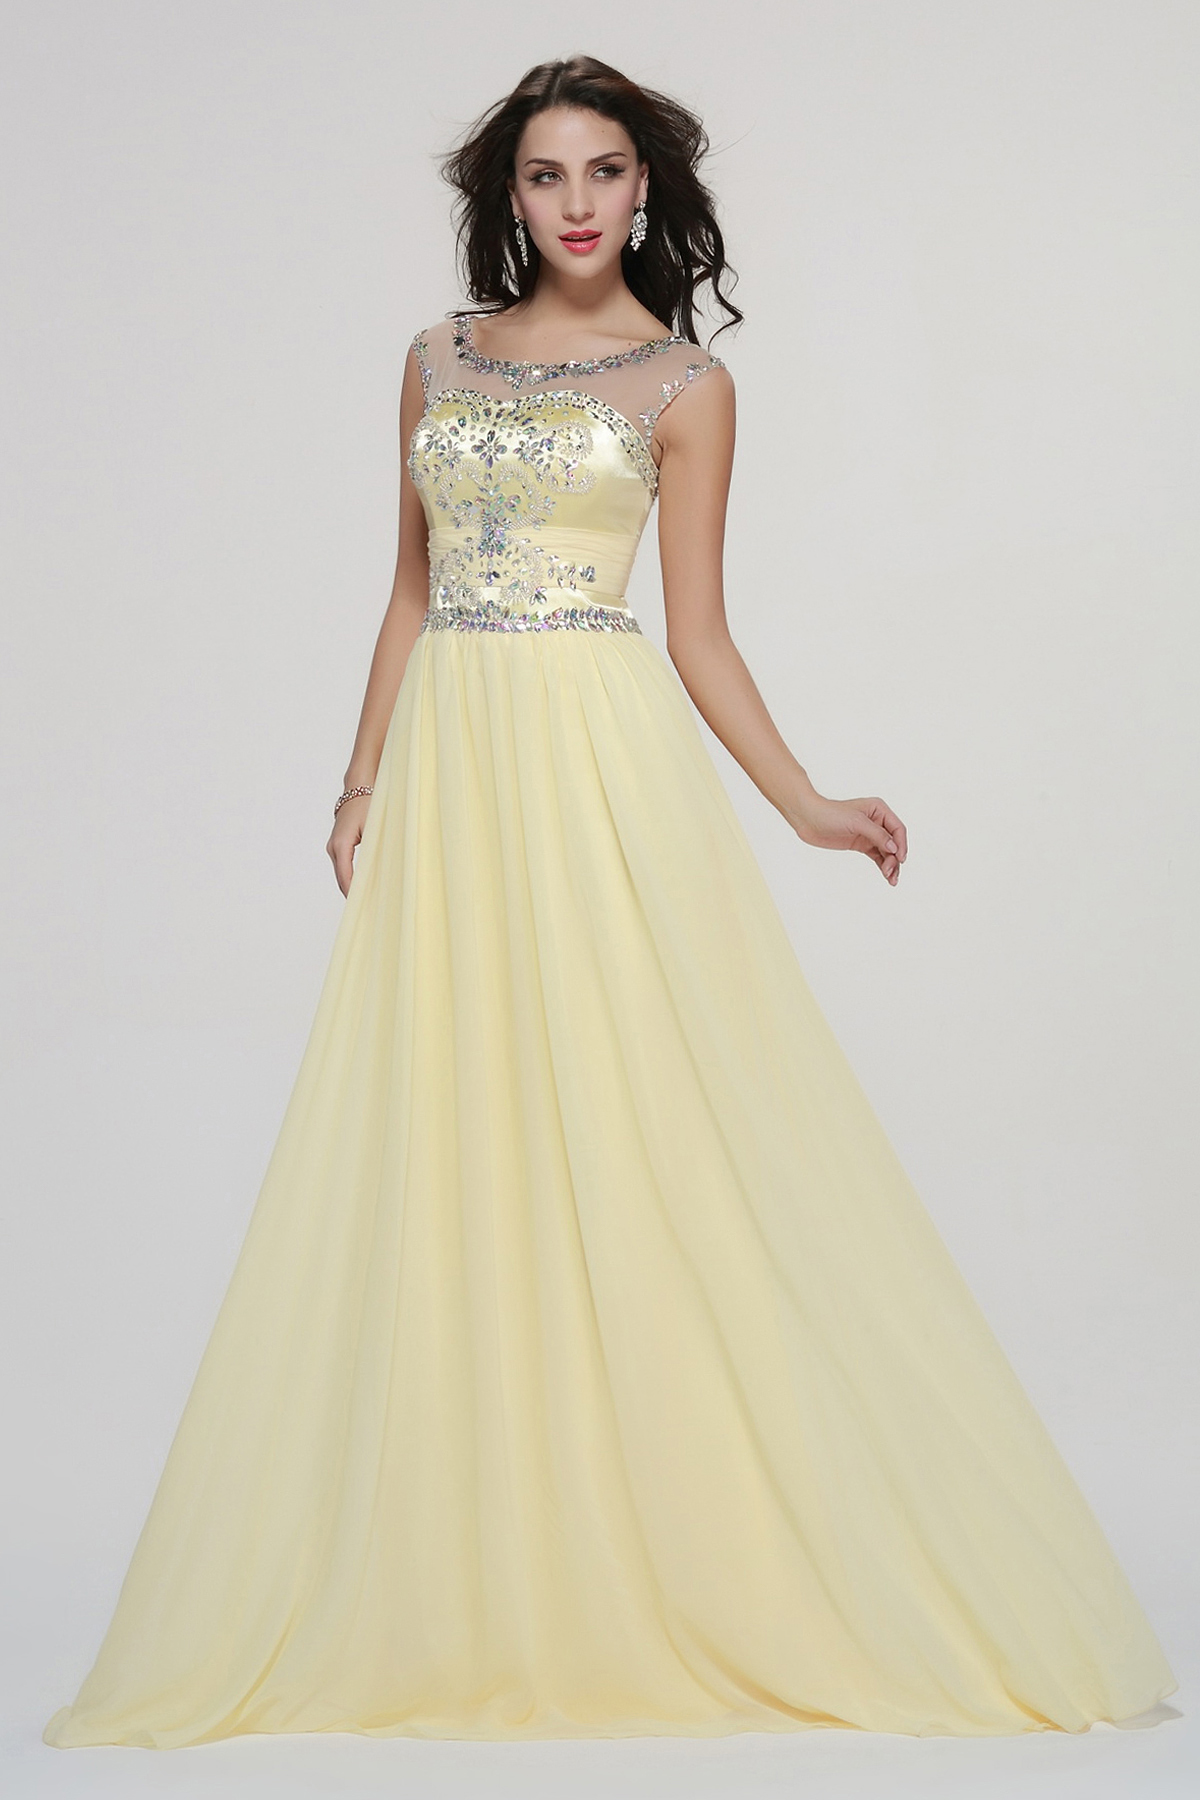 Sparkling Beaded Illusion Neck Beading A-line Long Daffodil Chiffon Prom Dress